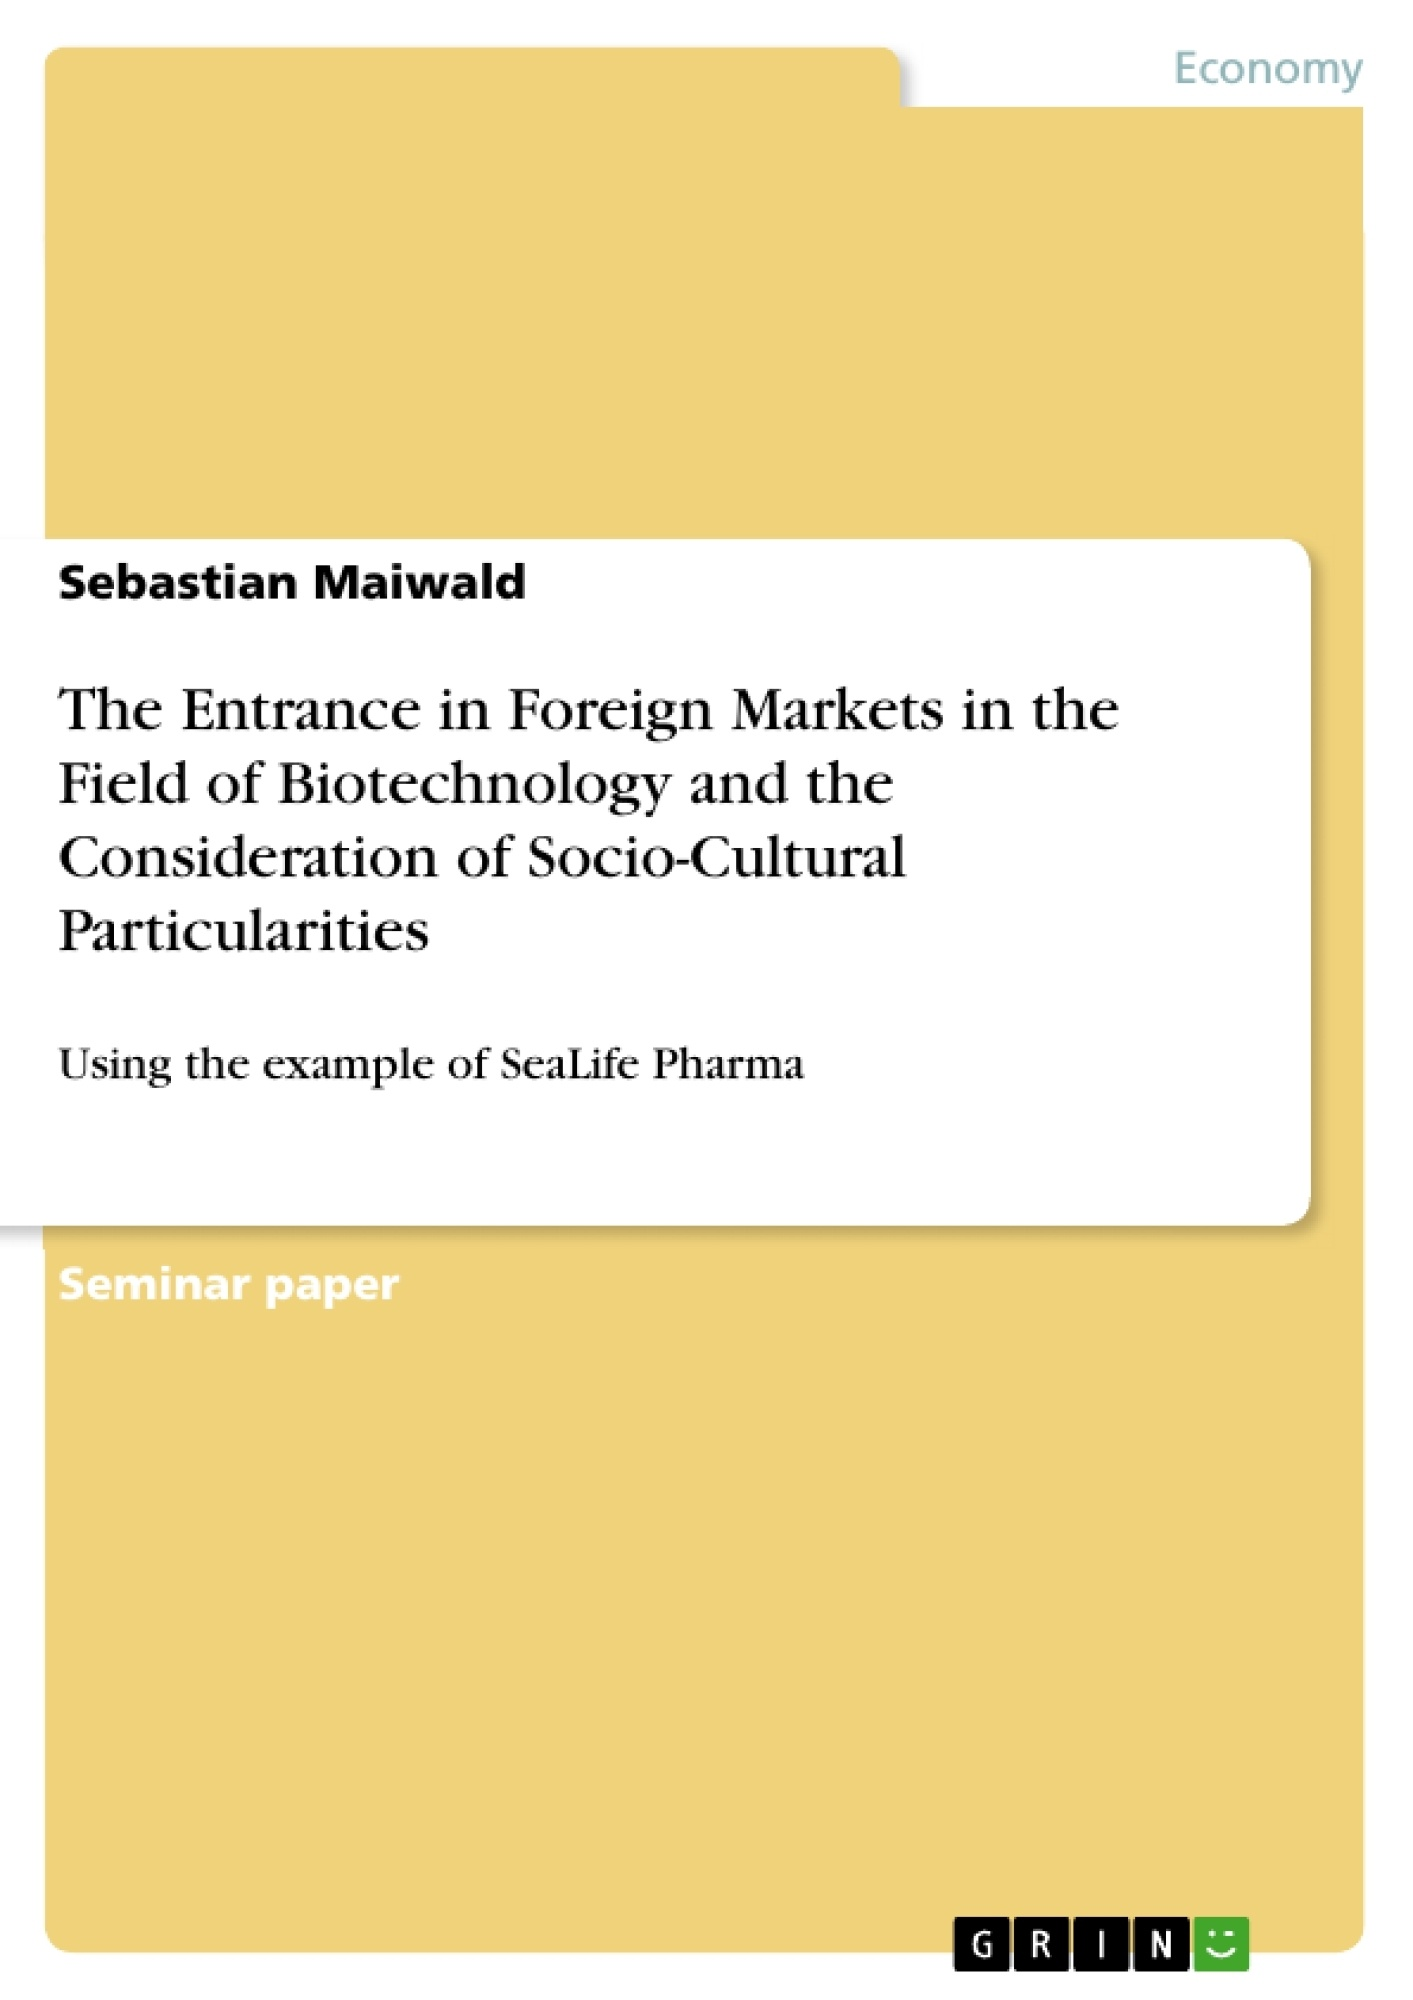 Title: The Entrance in Foreign Markets in the  Field of Biotechnology and the Consideration of Socio-Cultural Particularities